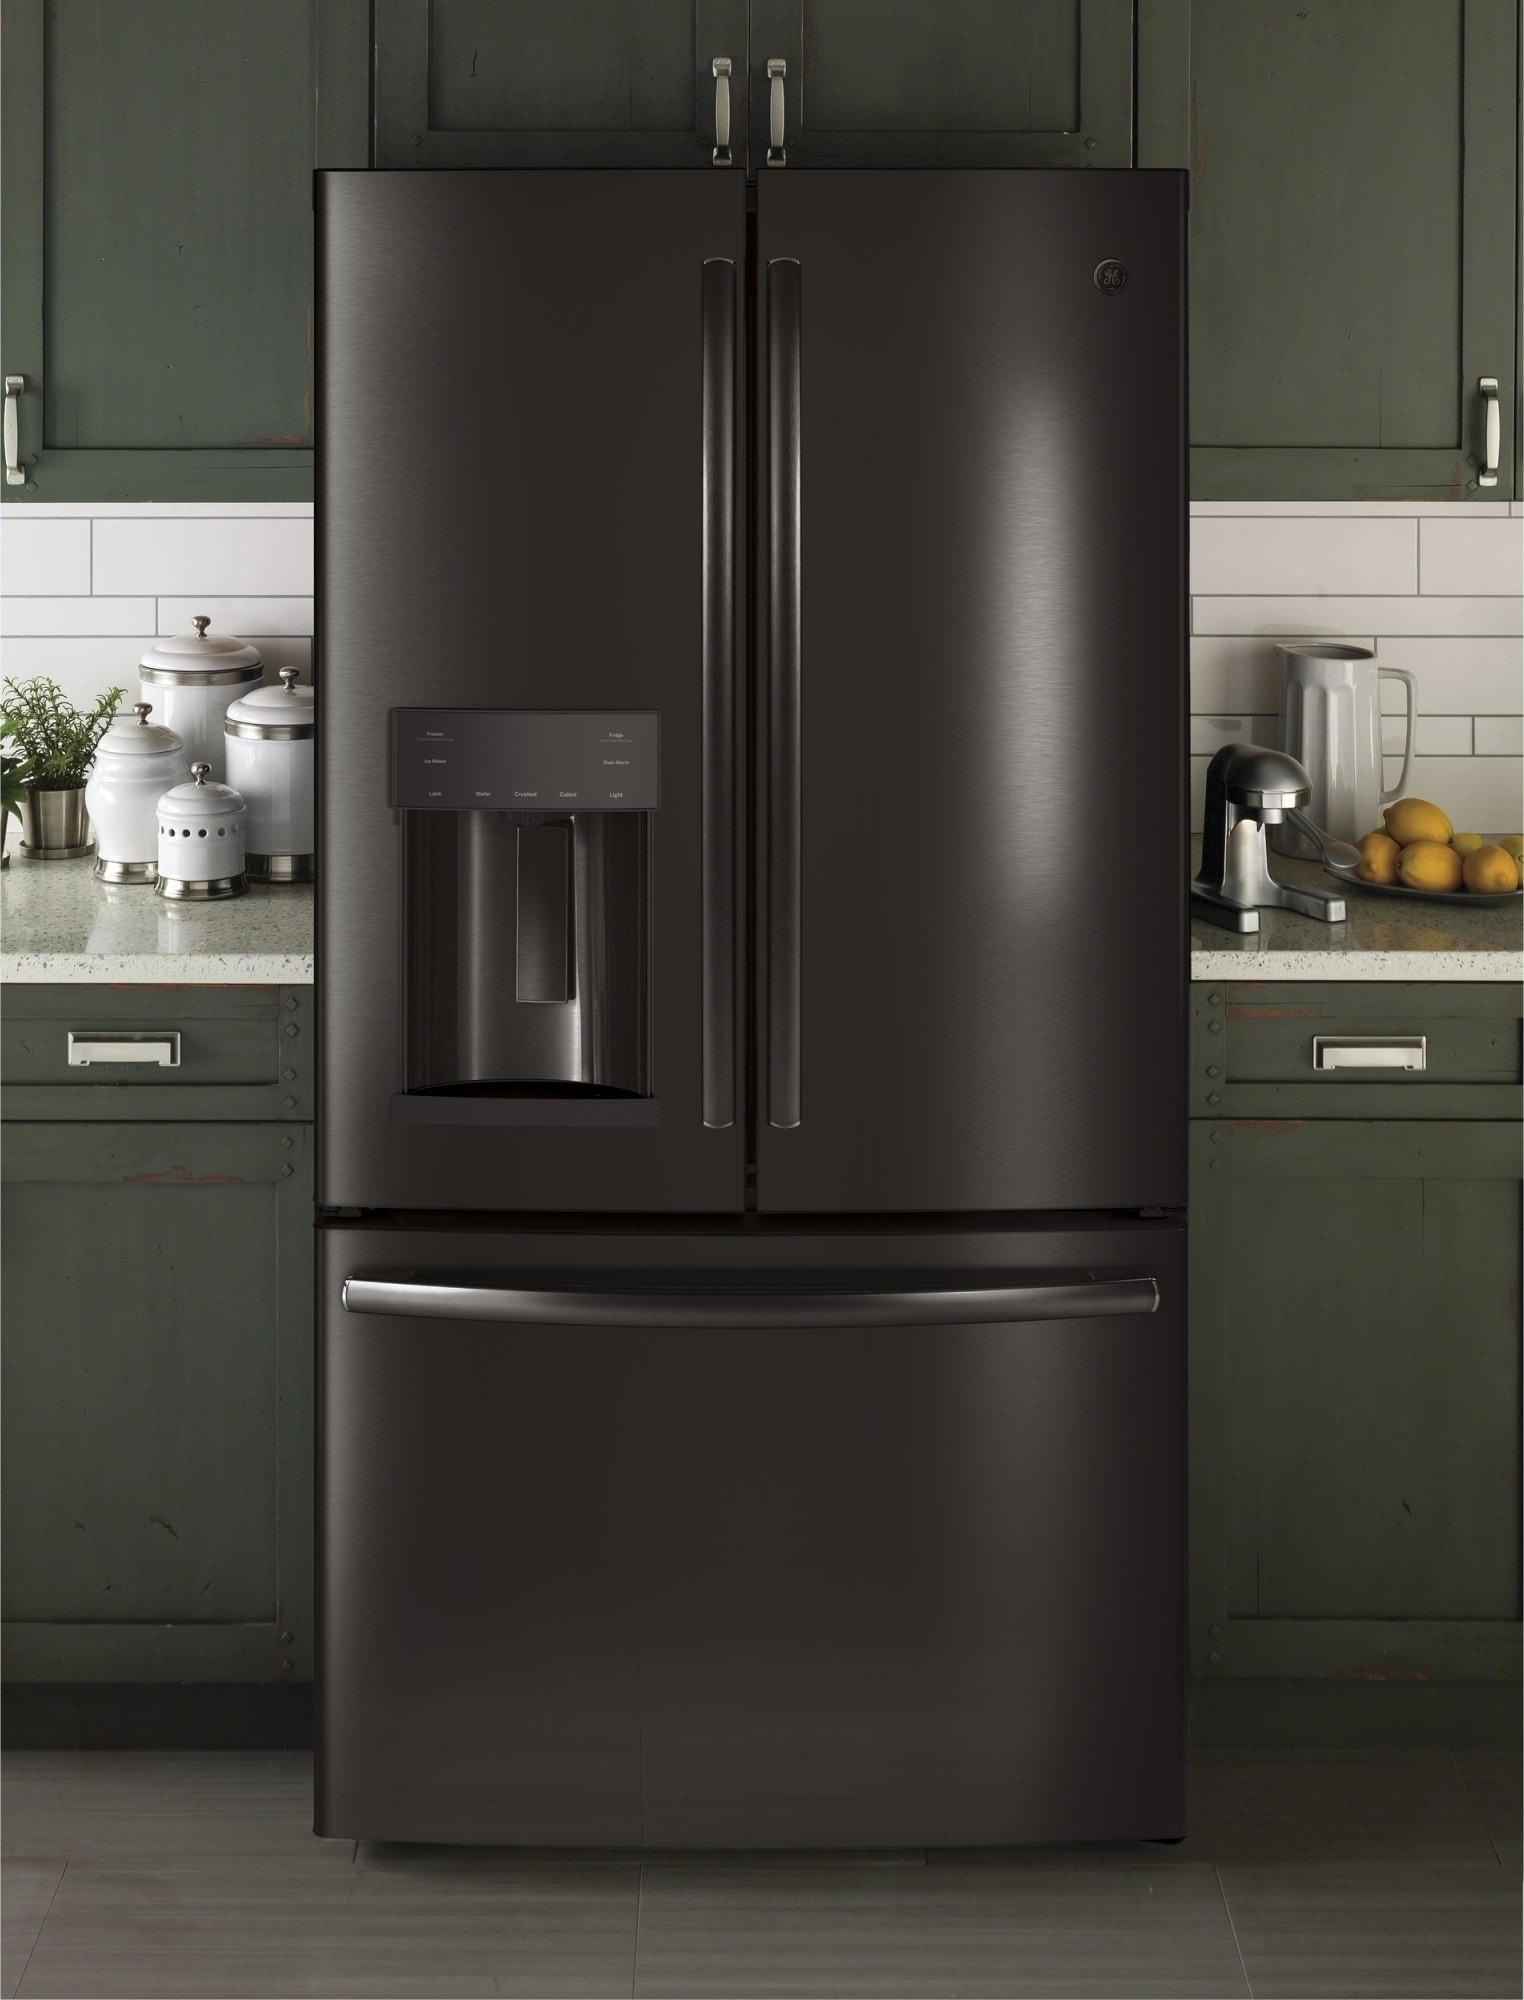 Gfe28gblts Ge 36 Quot 27 8 Cu Ft French Door Refrigerator